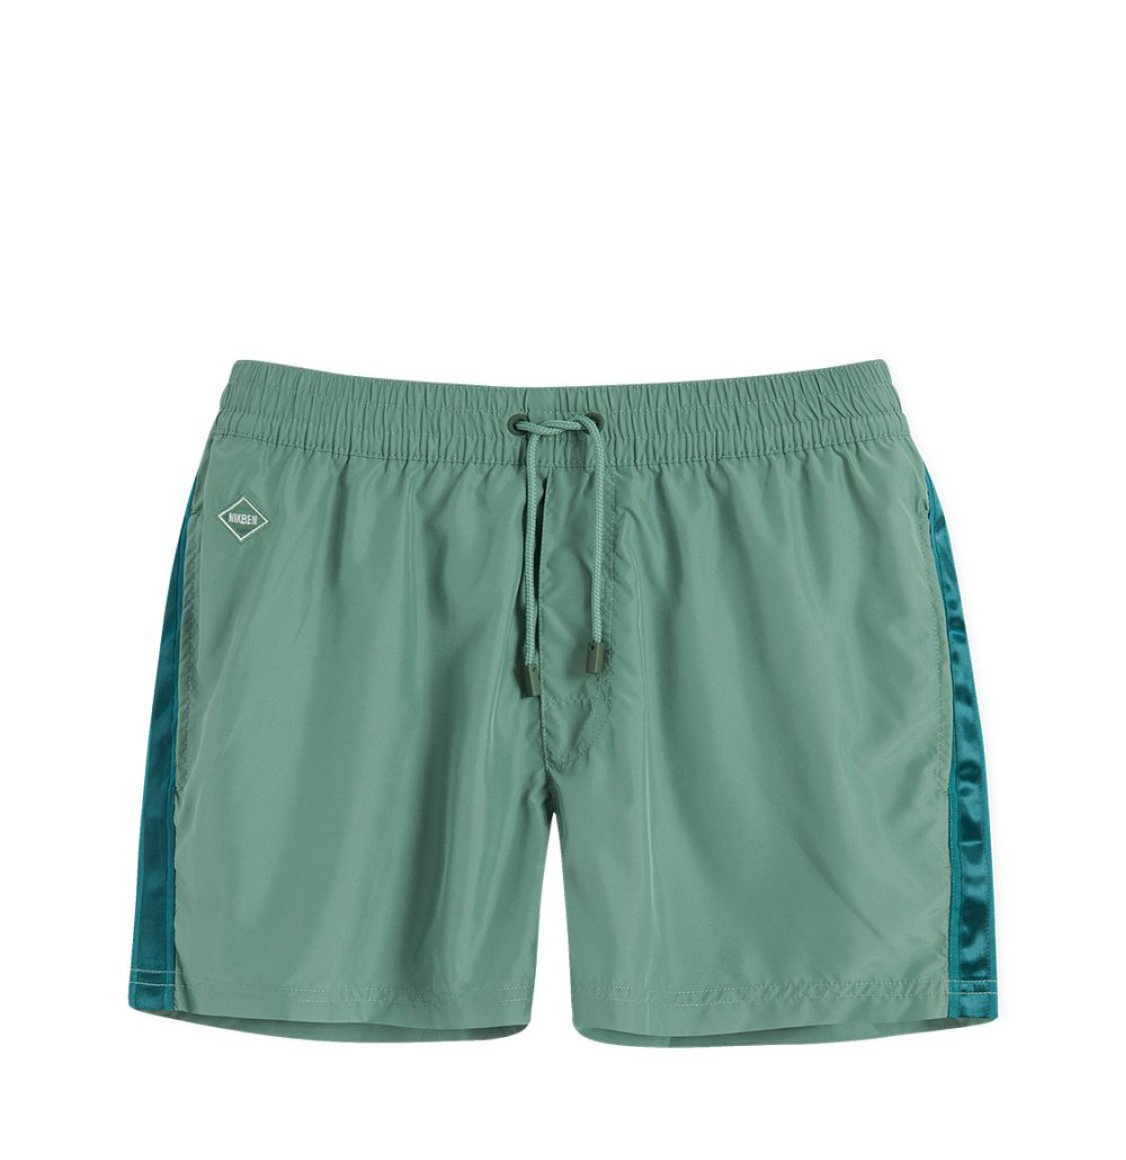 Nikben Studio Jungle Swim Shorts Green